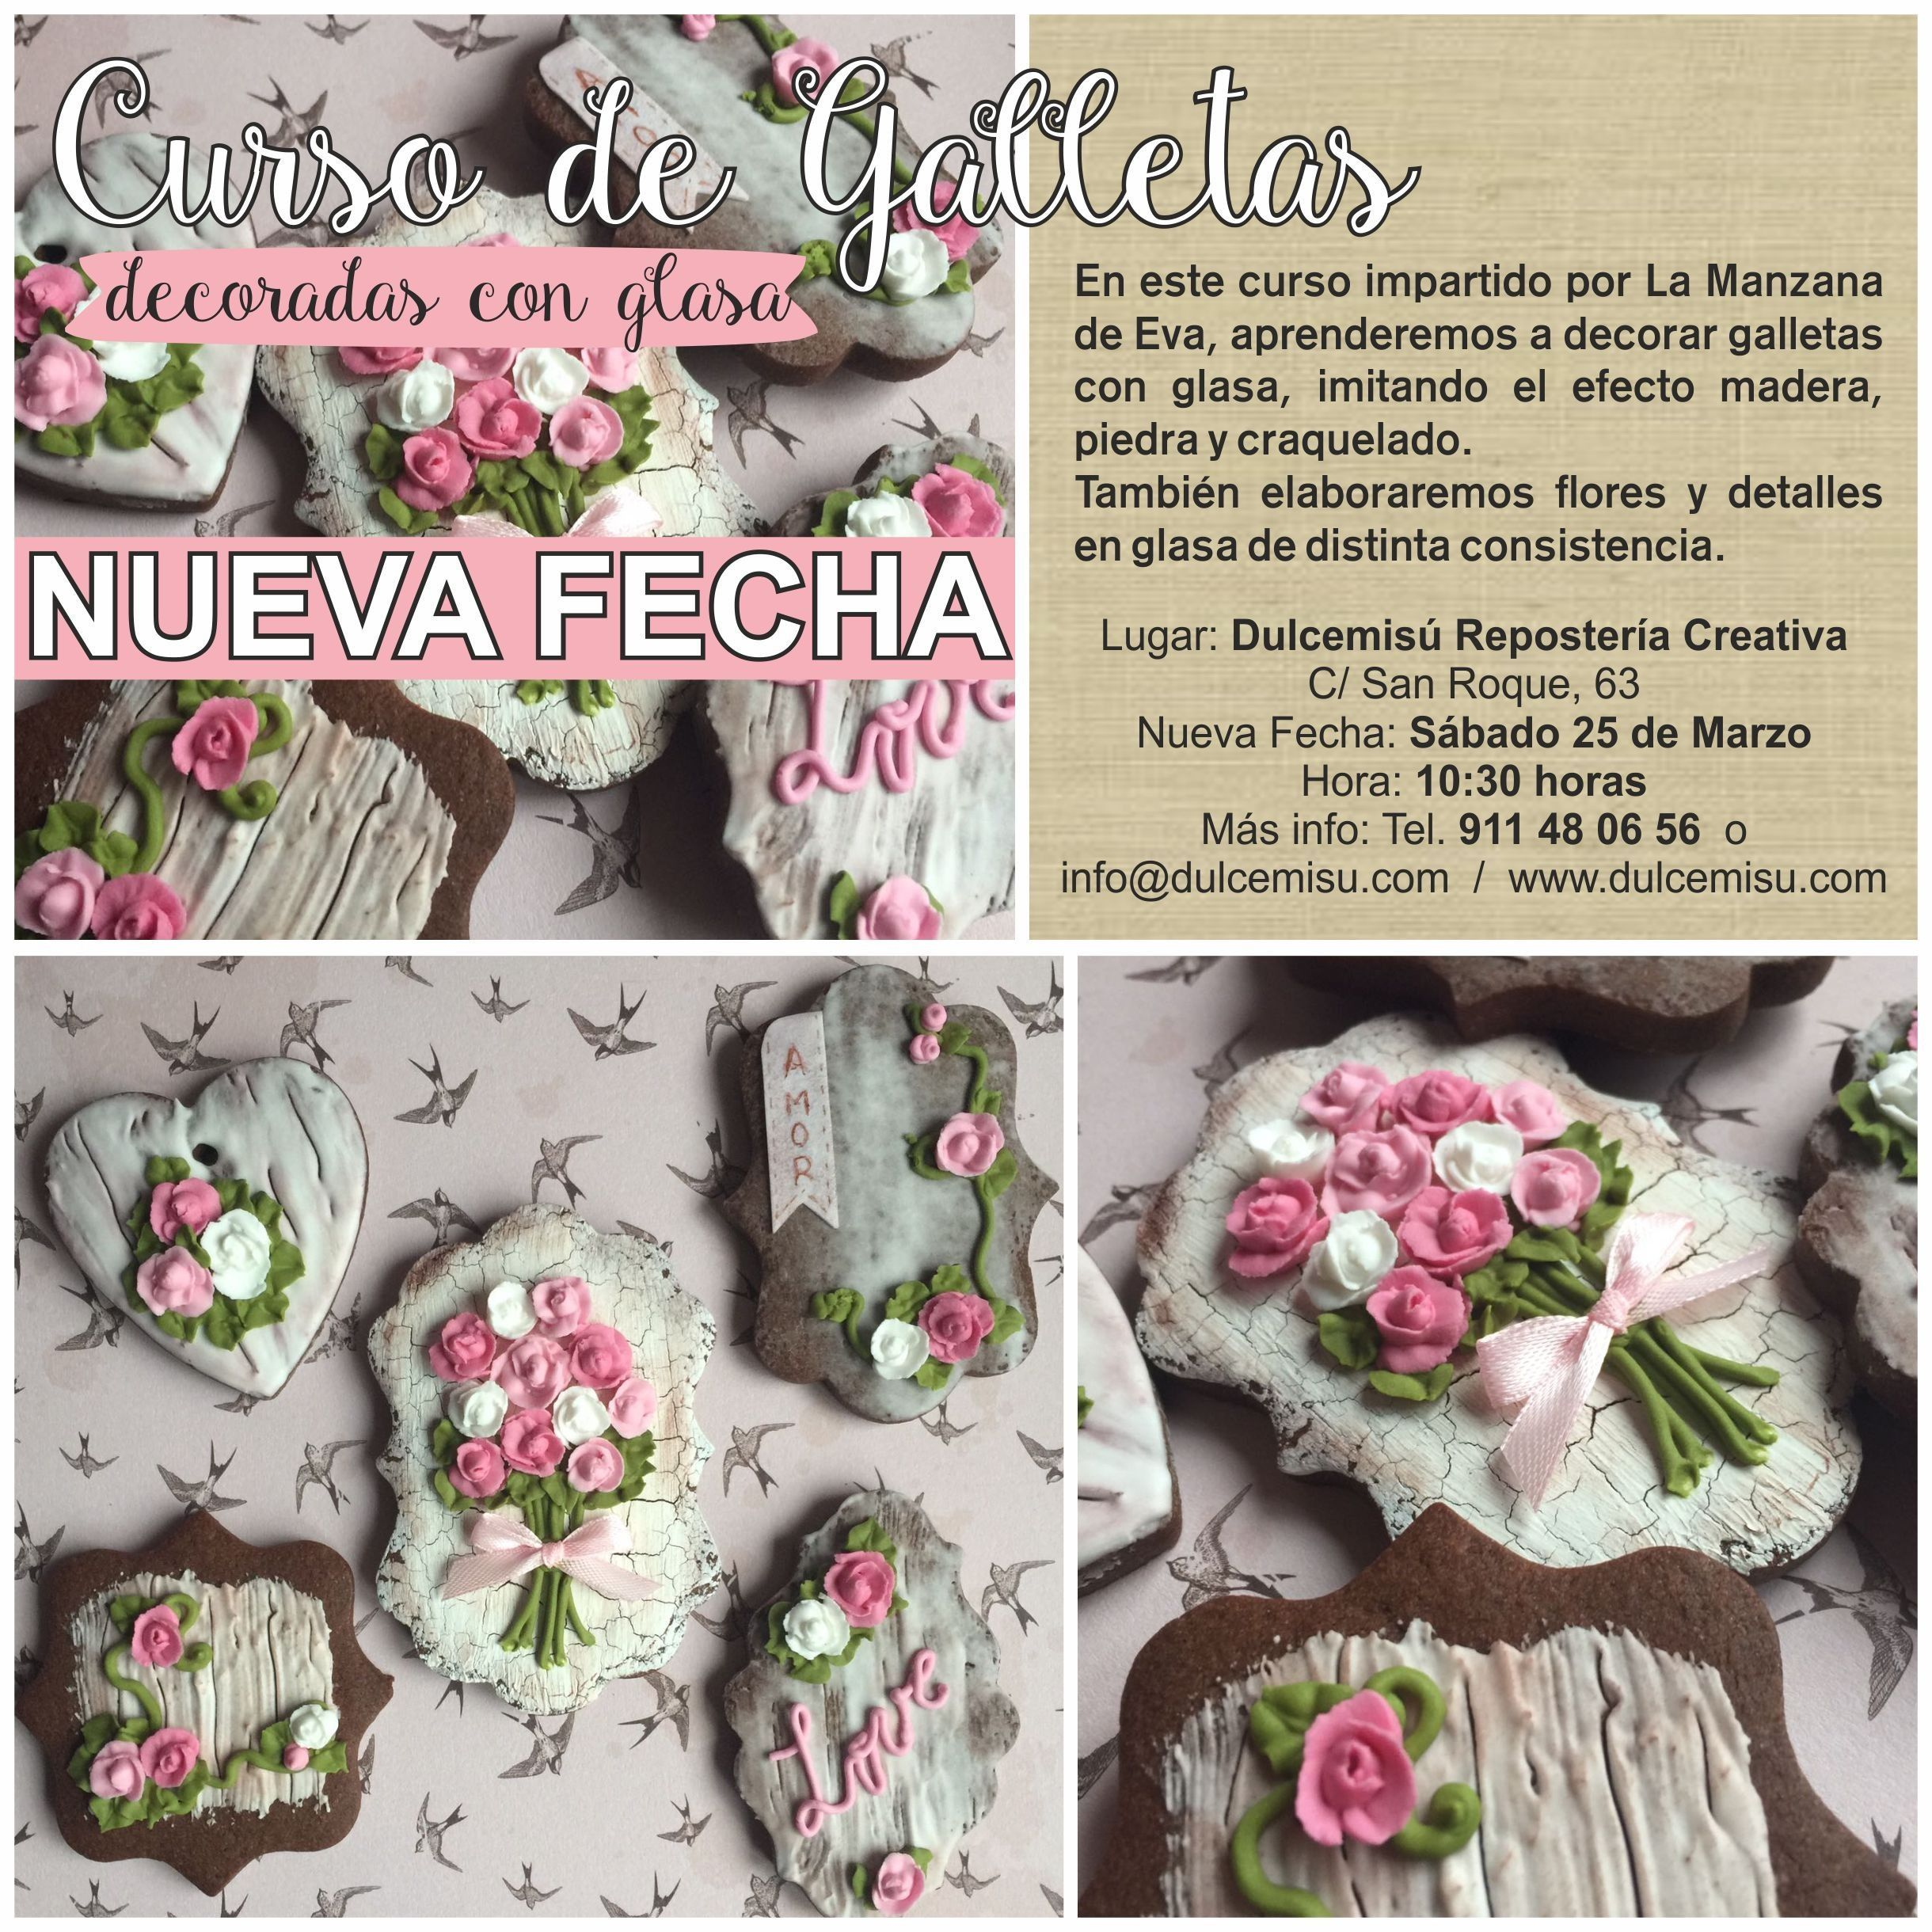 Utensilios Para Decorar Galletas Curso De Galletas Decoradas Con Glasa